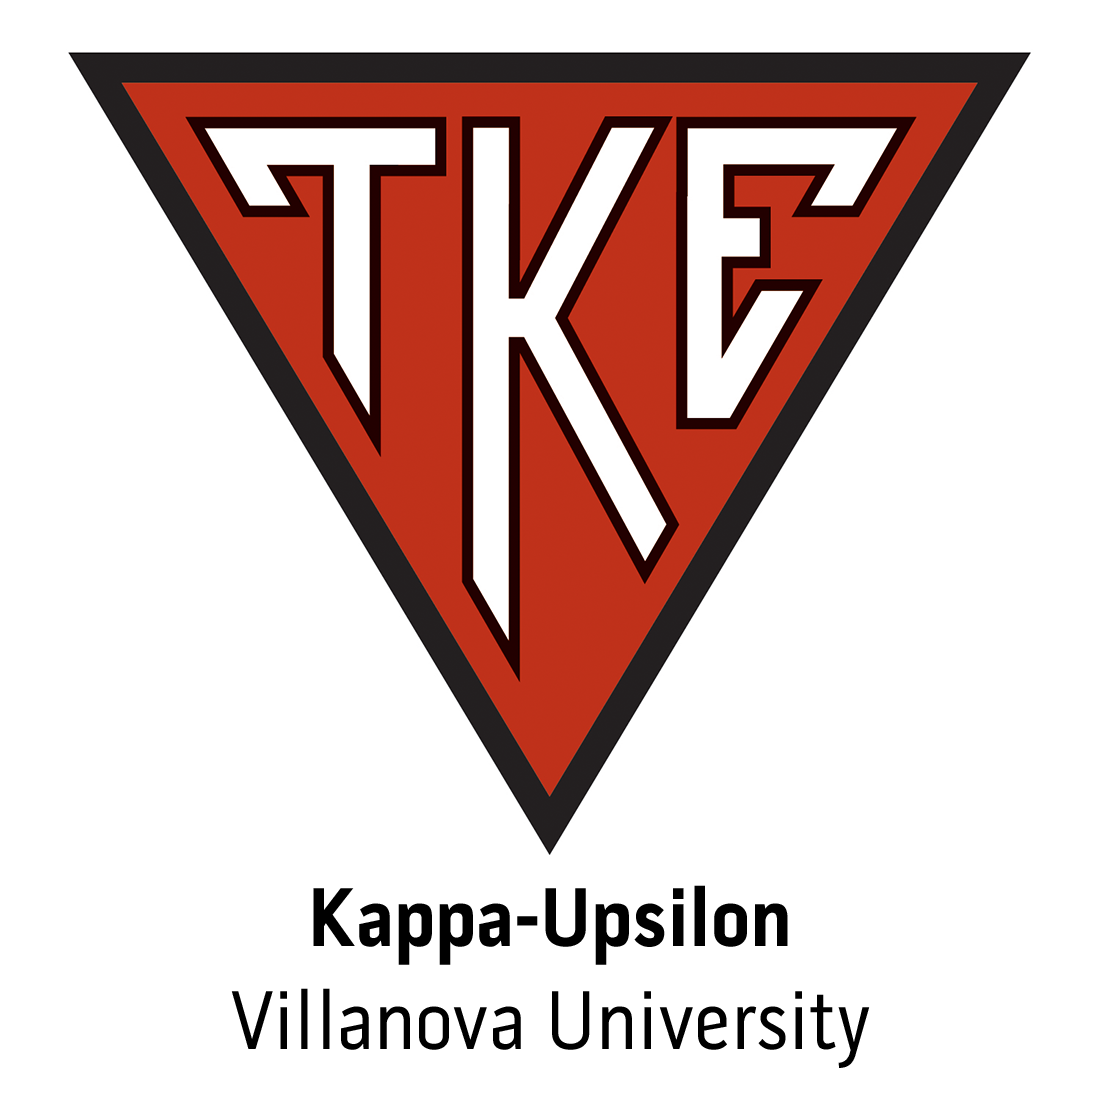 Kappa-Upsilon Chapter at Villanova University